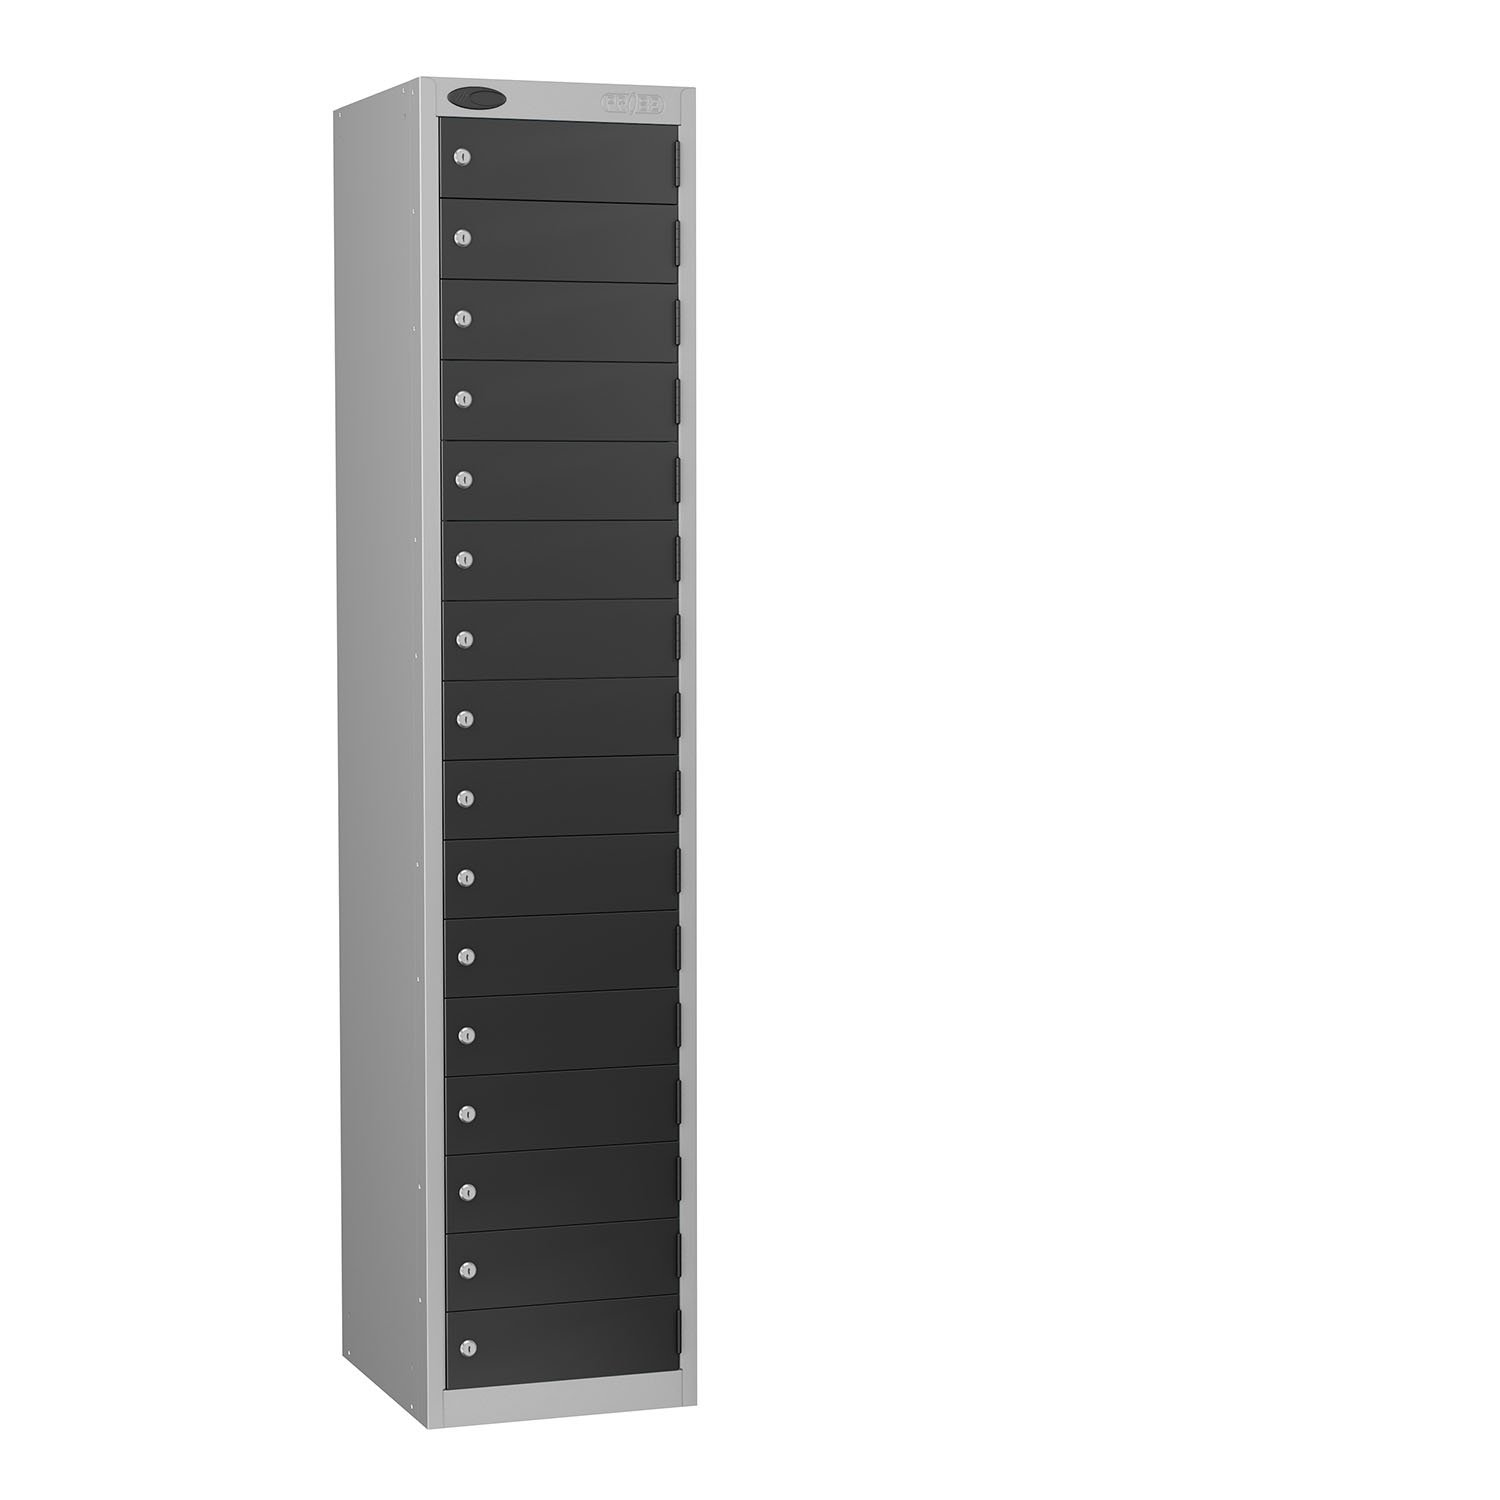 Probe 16 doors small compartments lockers in black colour